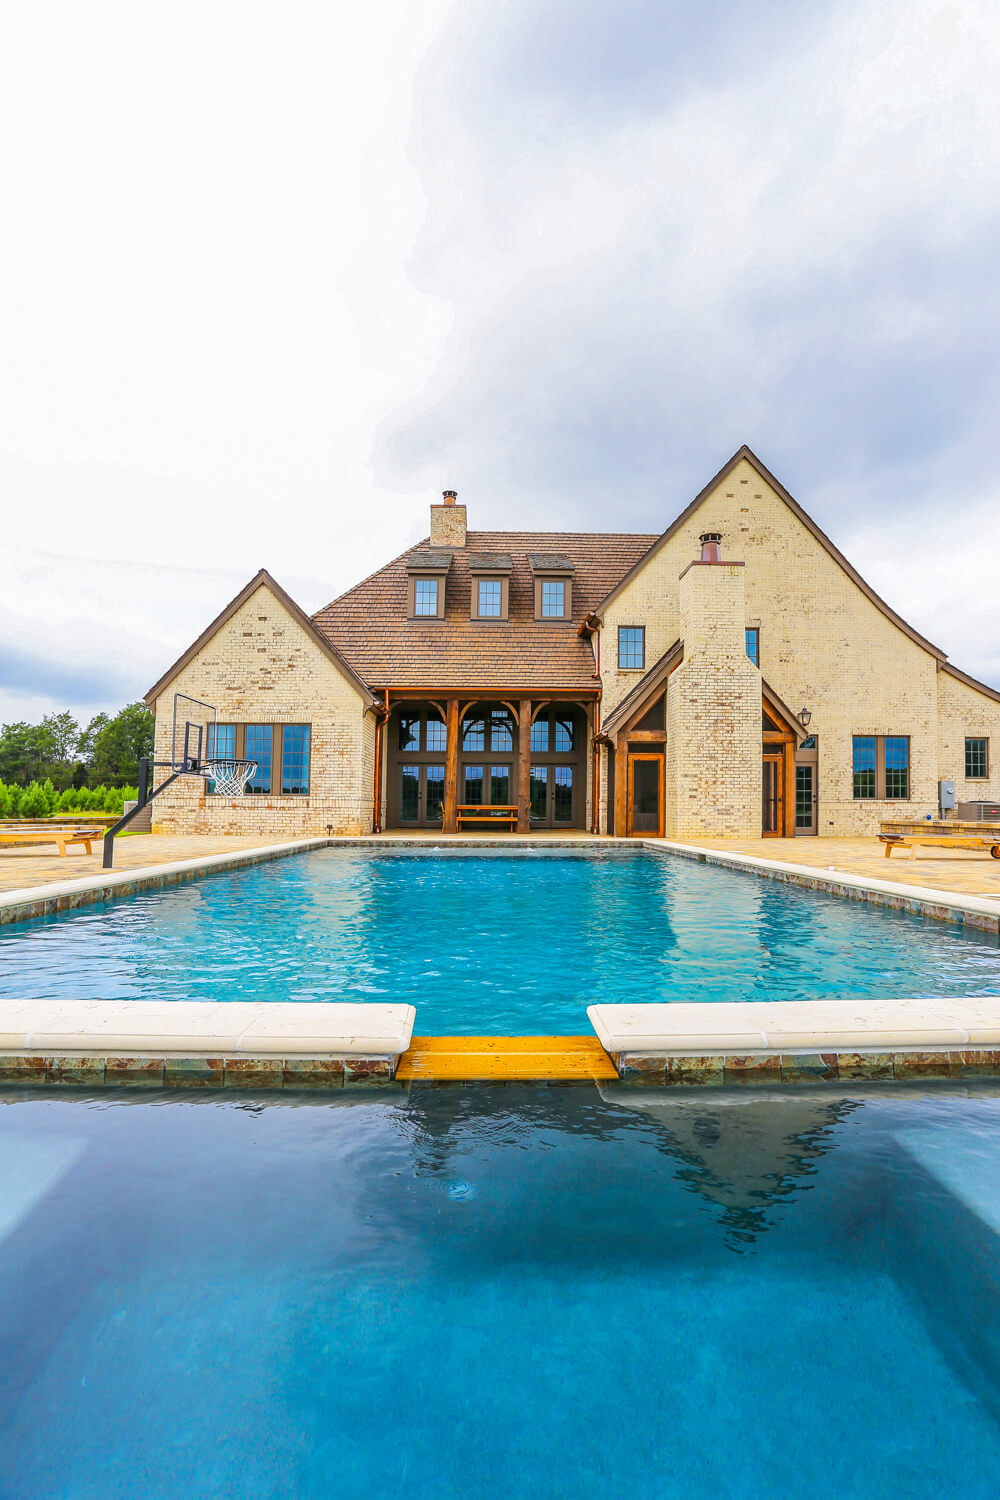 Private Residence - View from Pool - Designed by Foshee Architecture